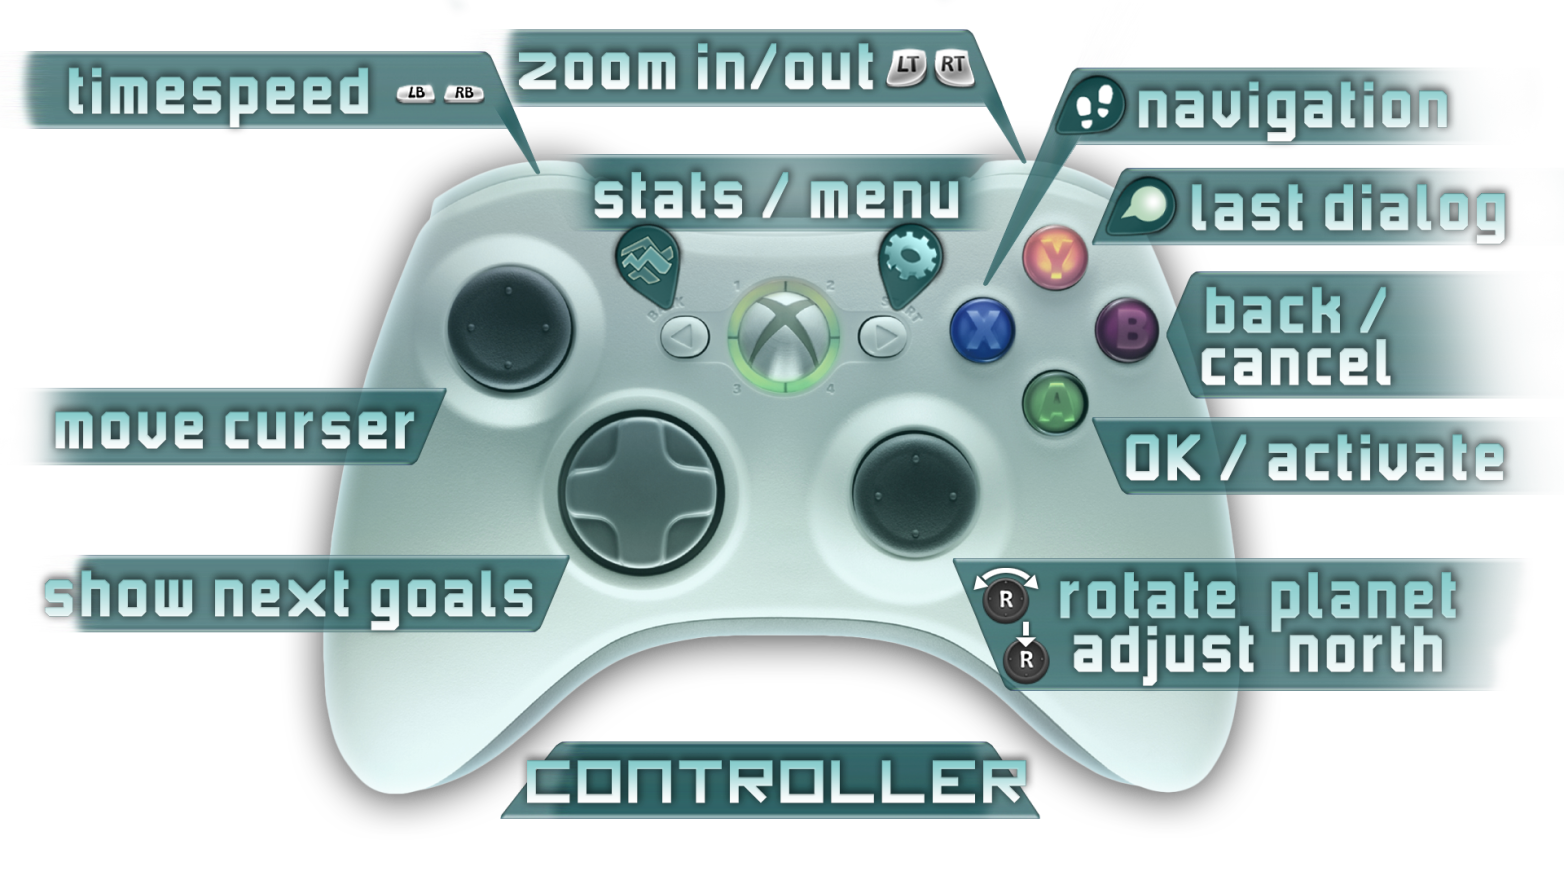 Gamepad Support Imagine Earth 3 Way Navigation Switch Please Let Us Know If You Like This Feature Or Prefer To Play The Oldschool Sitting At Your Desk With Mouse And Keyboard